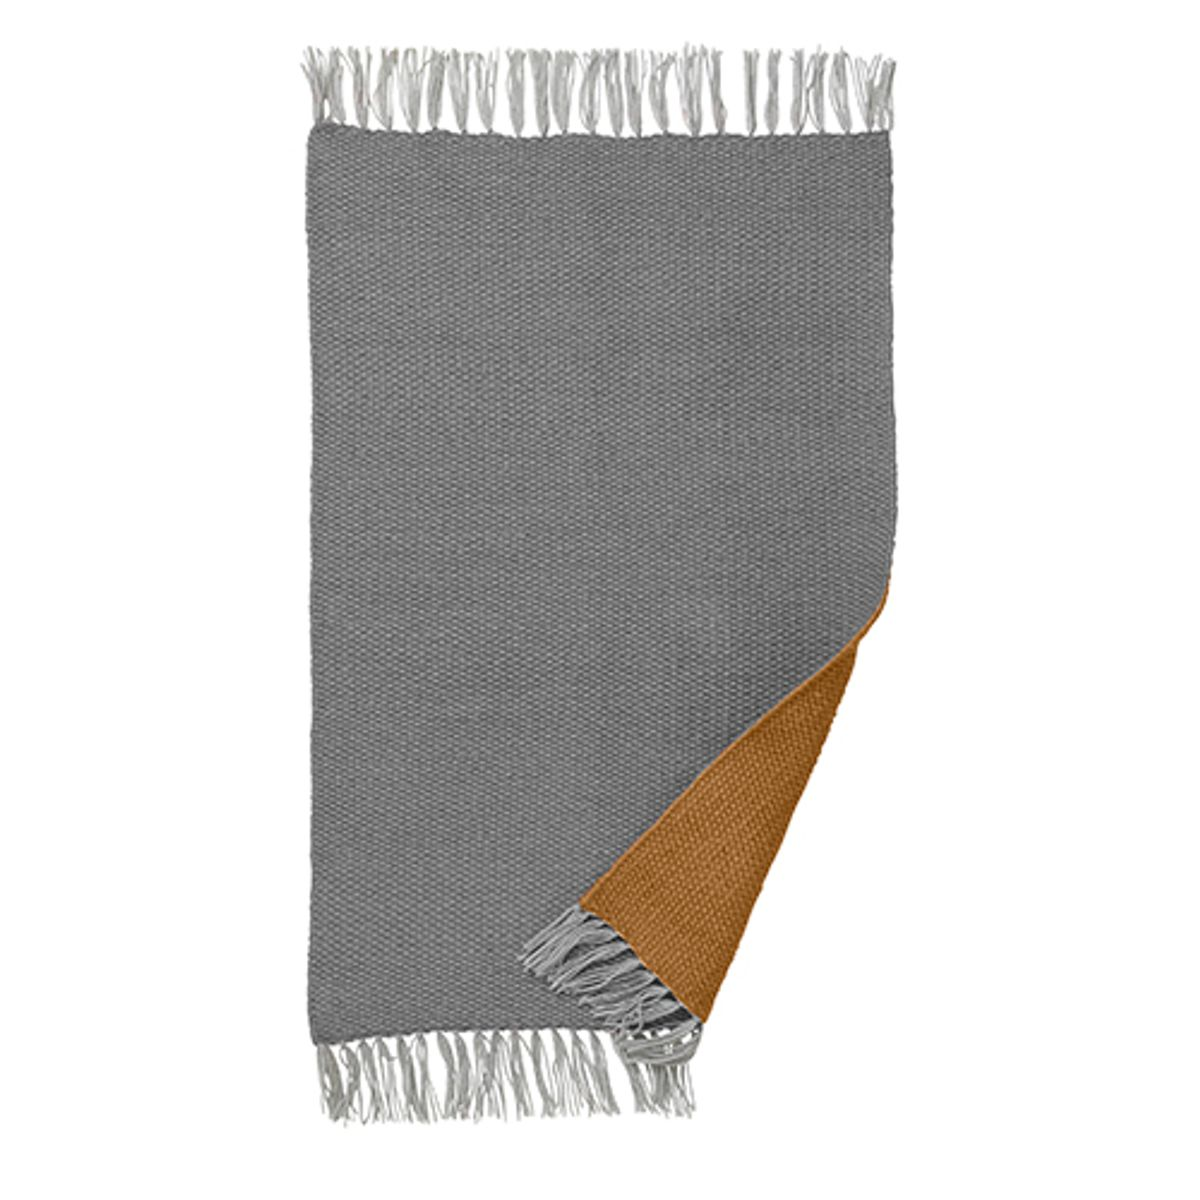 Tapis en polyester recyclé Curry Nomad Ferm Living